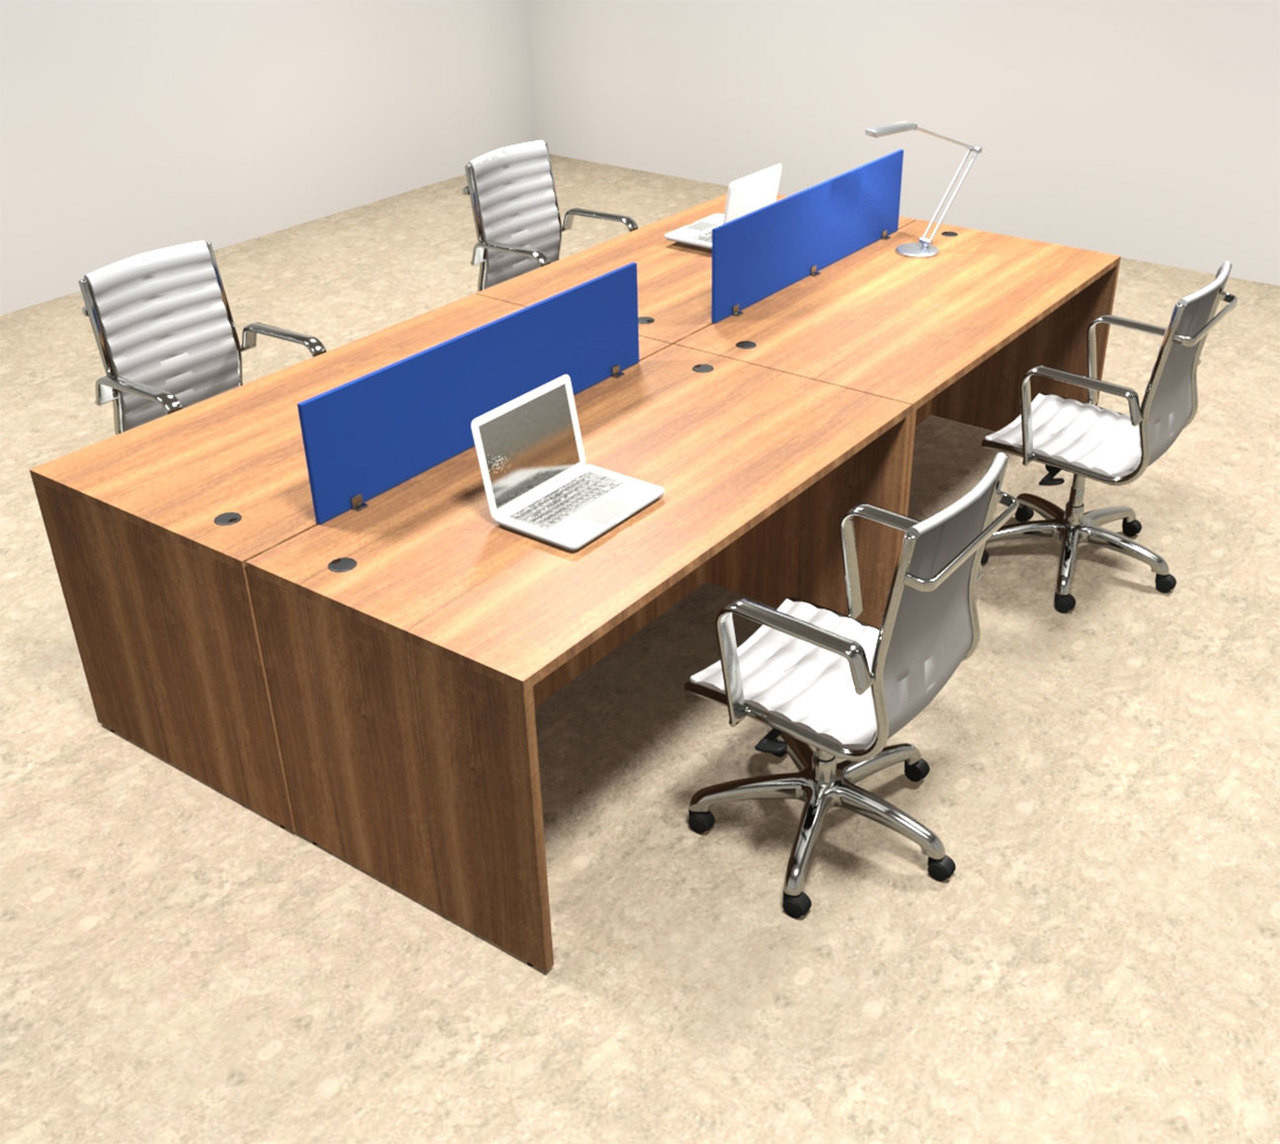 Office Table For 4 Person: Four Person Modern Blue Divider Office Workstation Desk